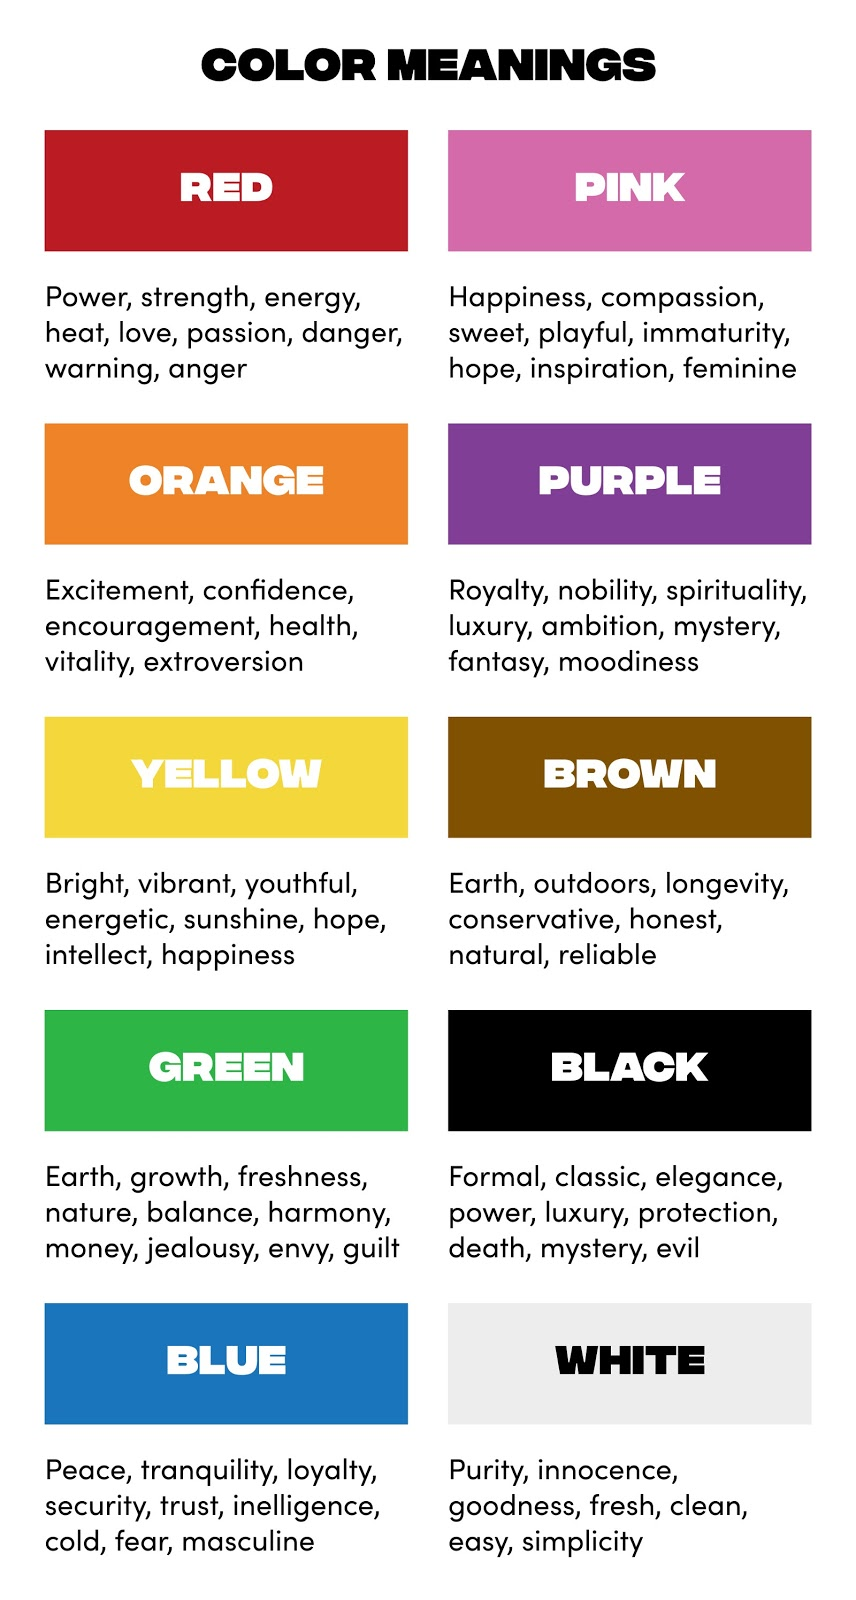 A table with color meanings